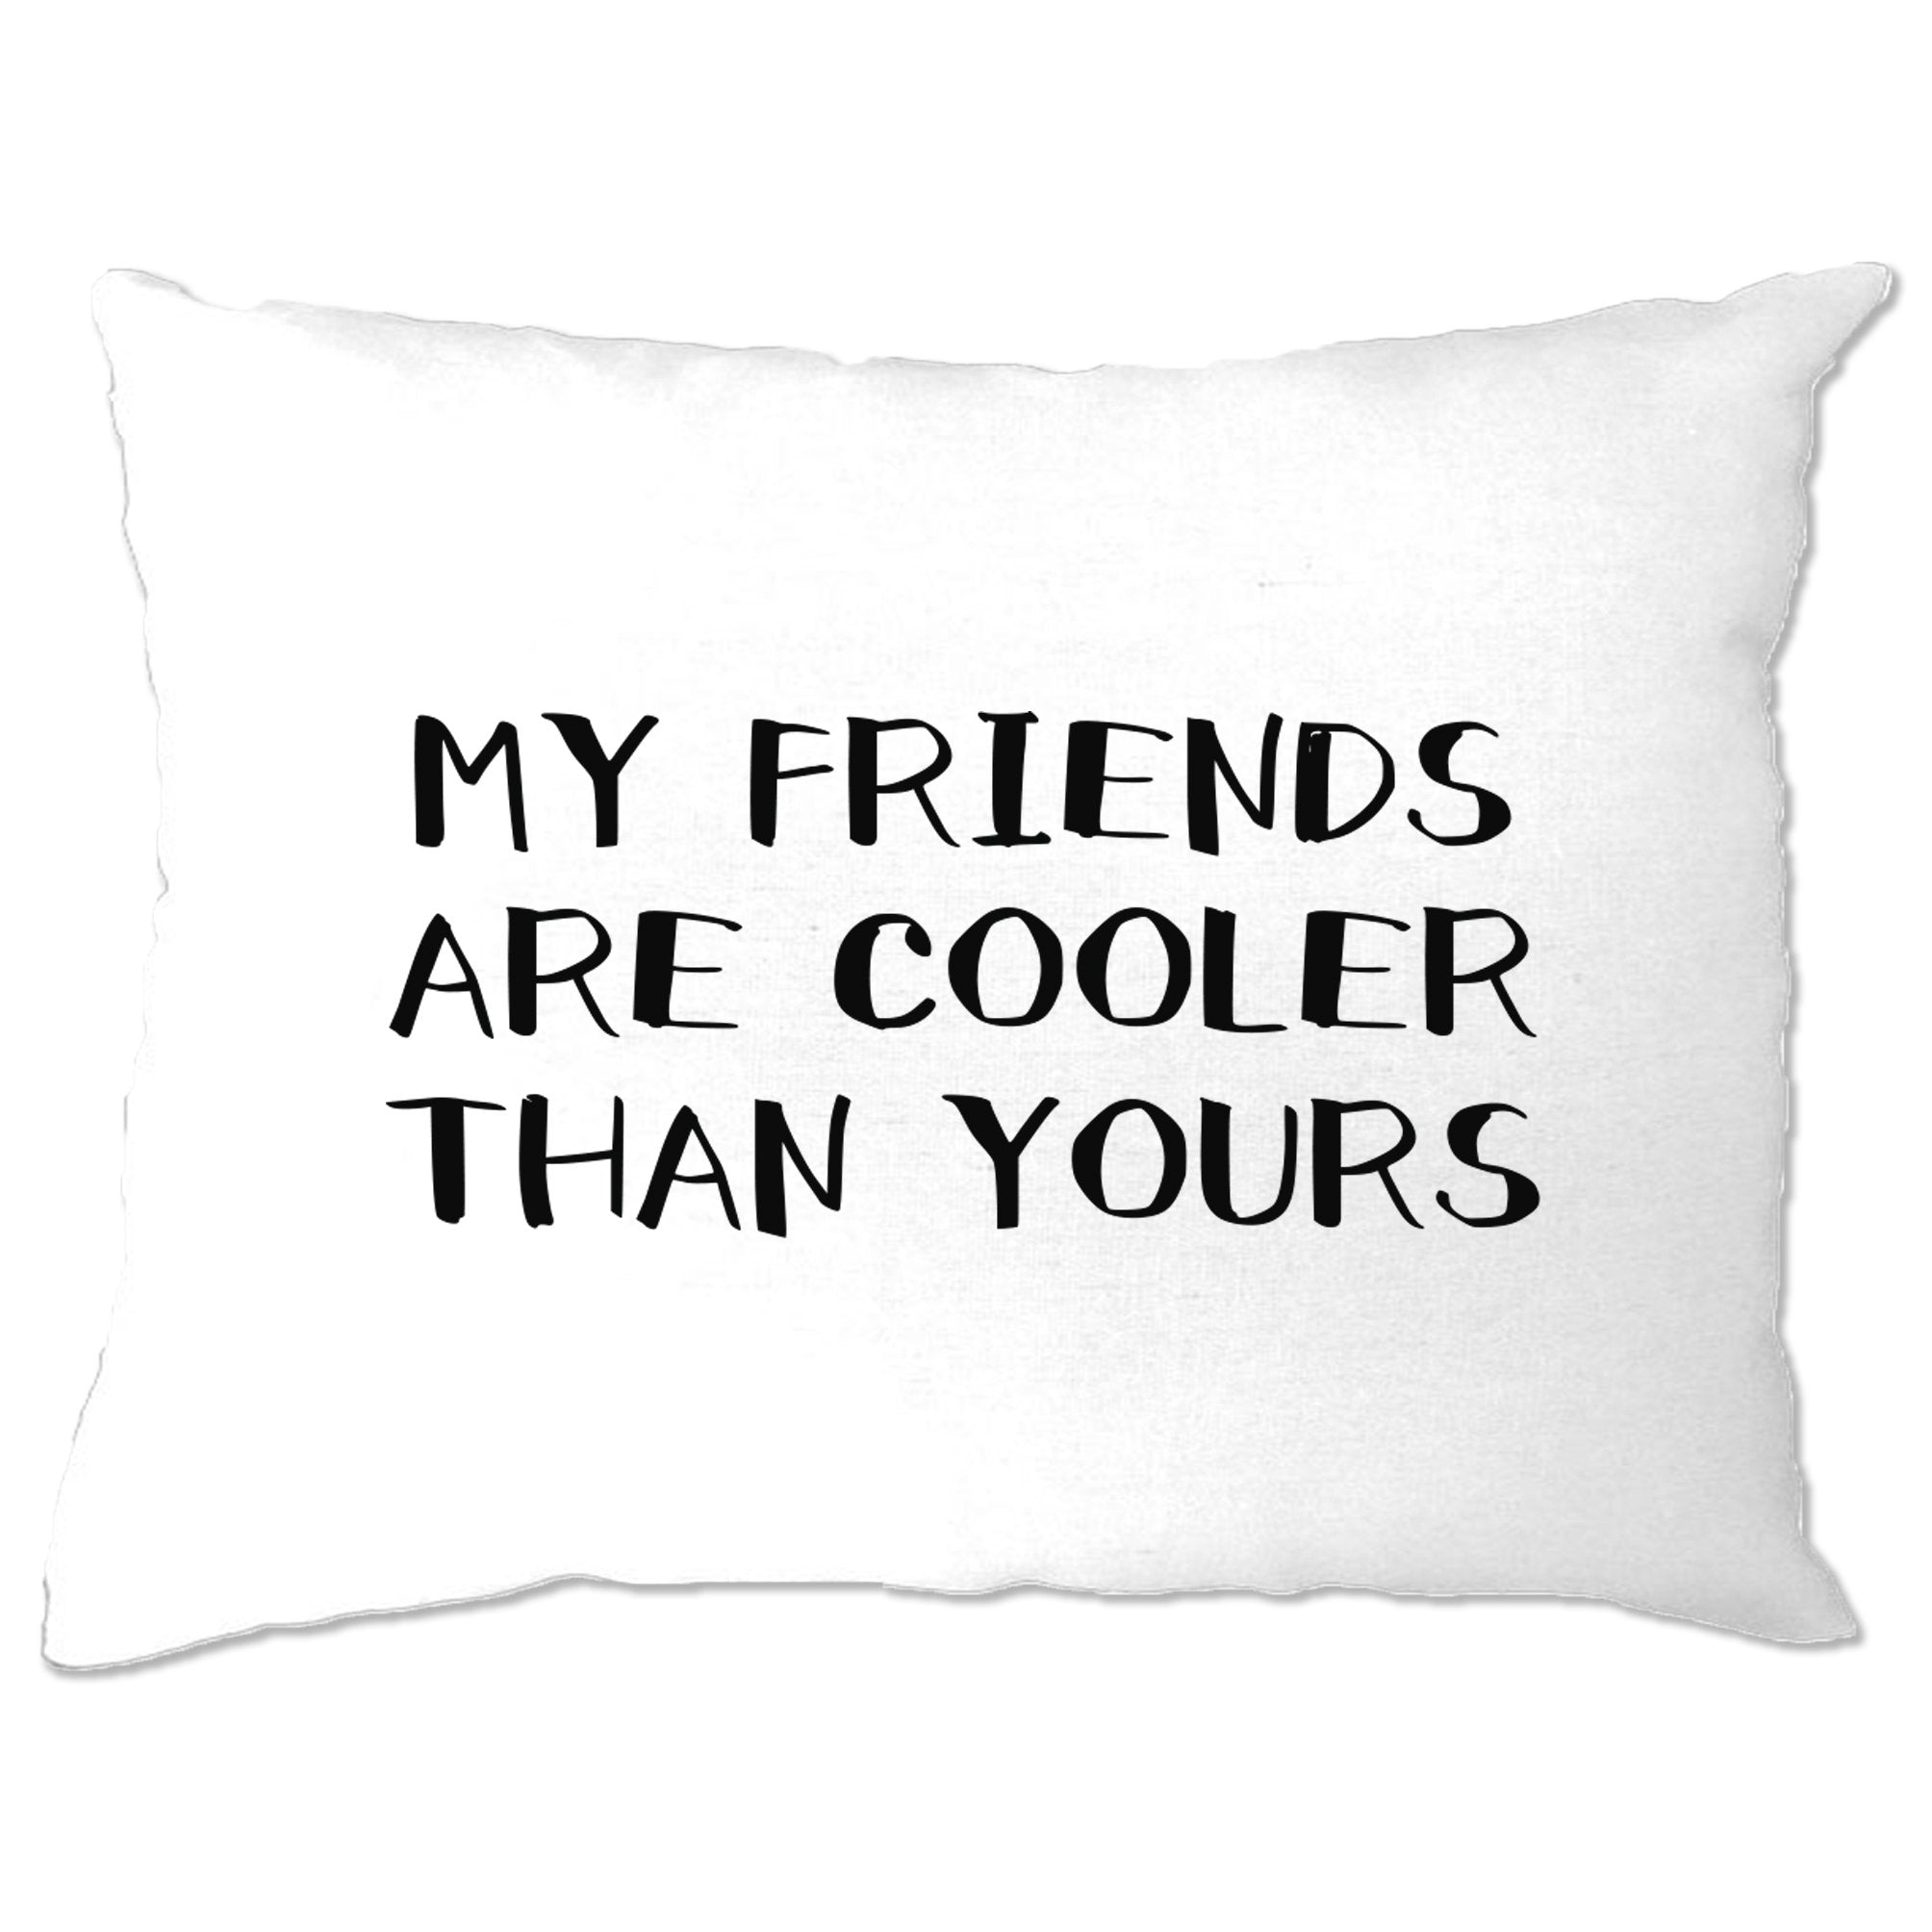 Novelty Pillow Case My Friends Are Cooler Than Yours Joke